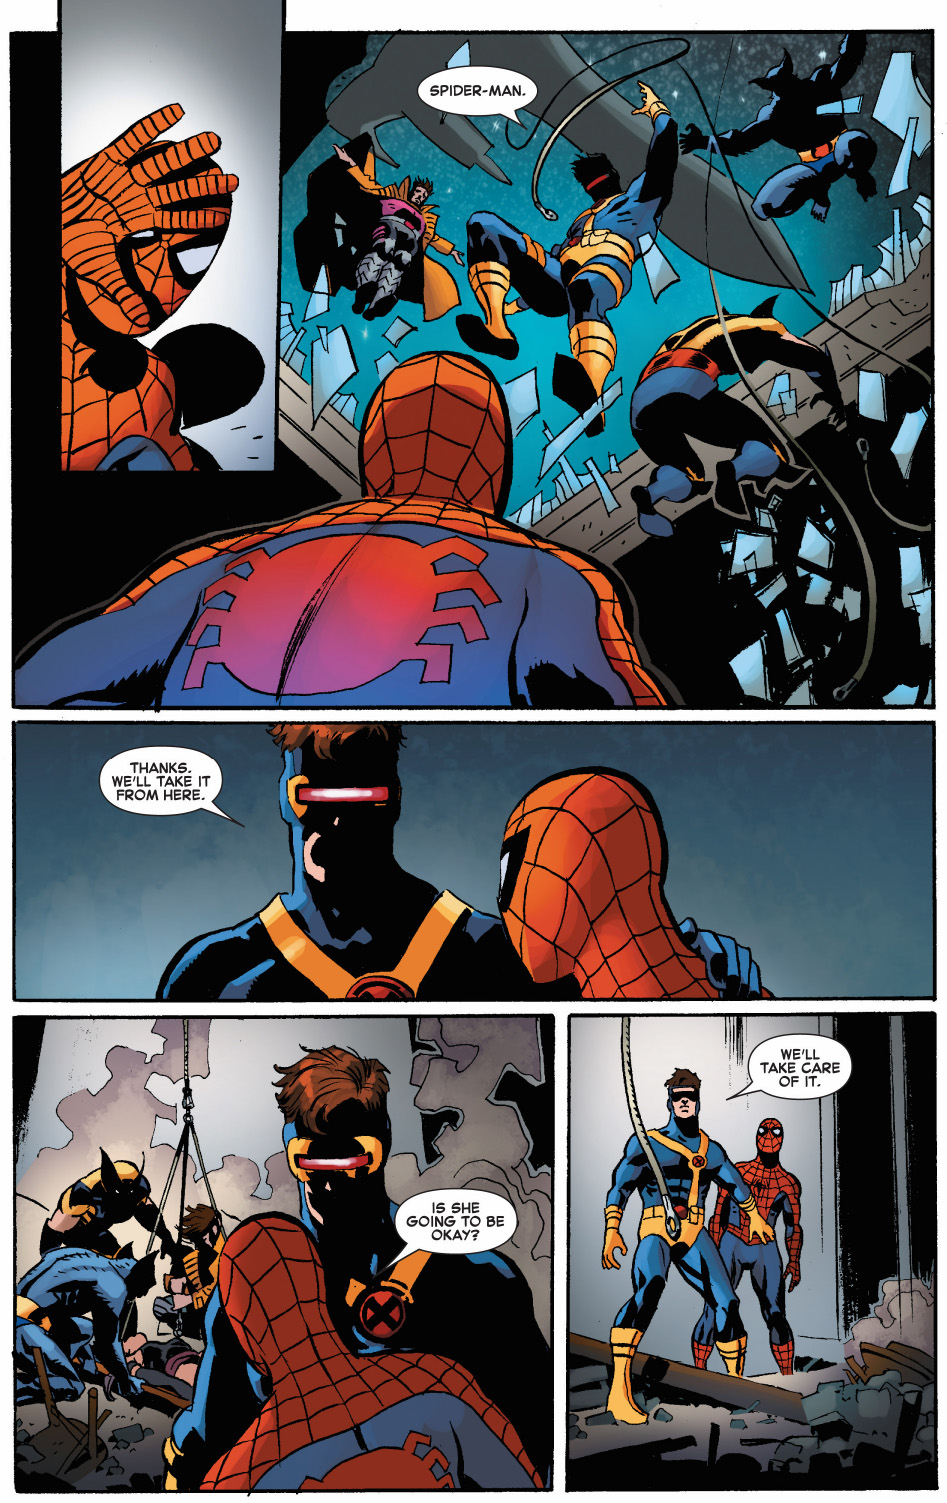 spider-man comforts a dying psylocke